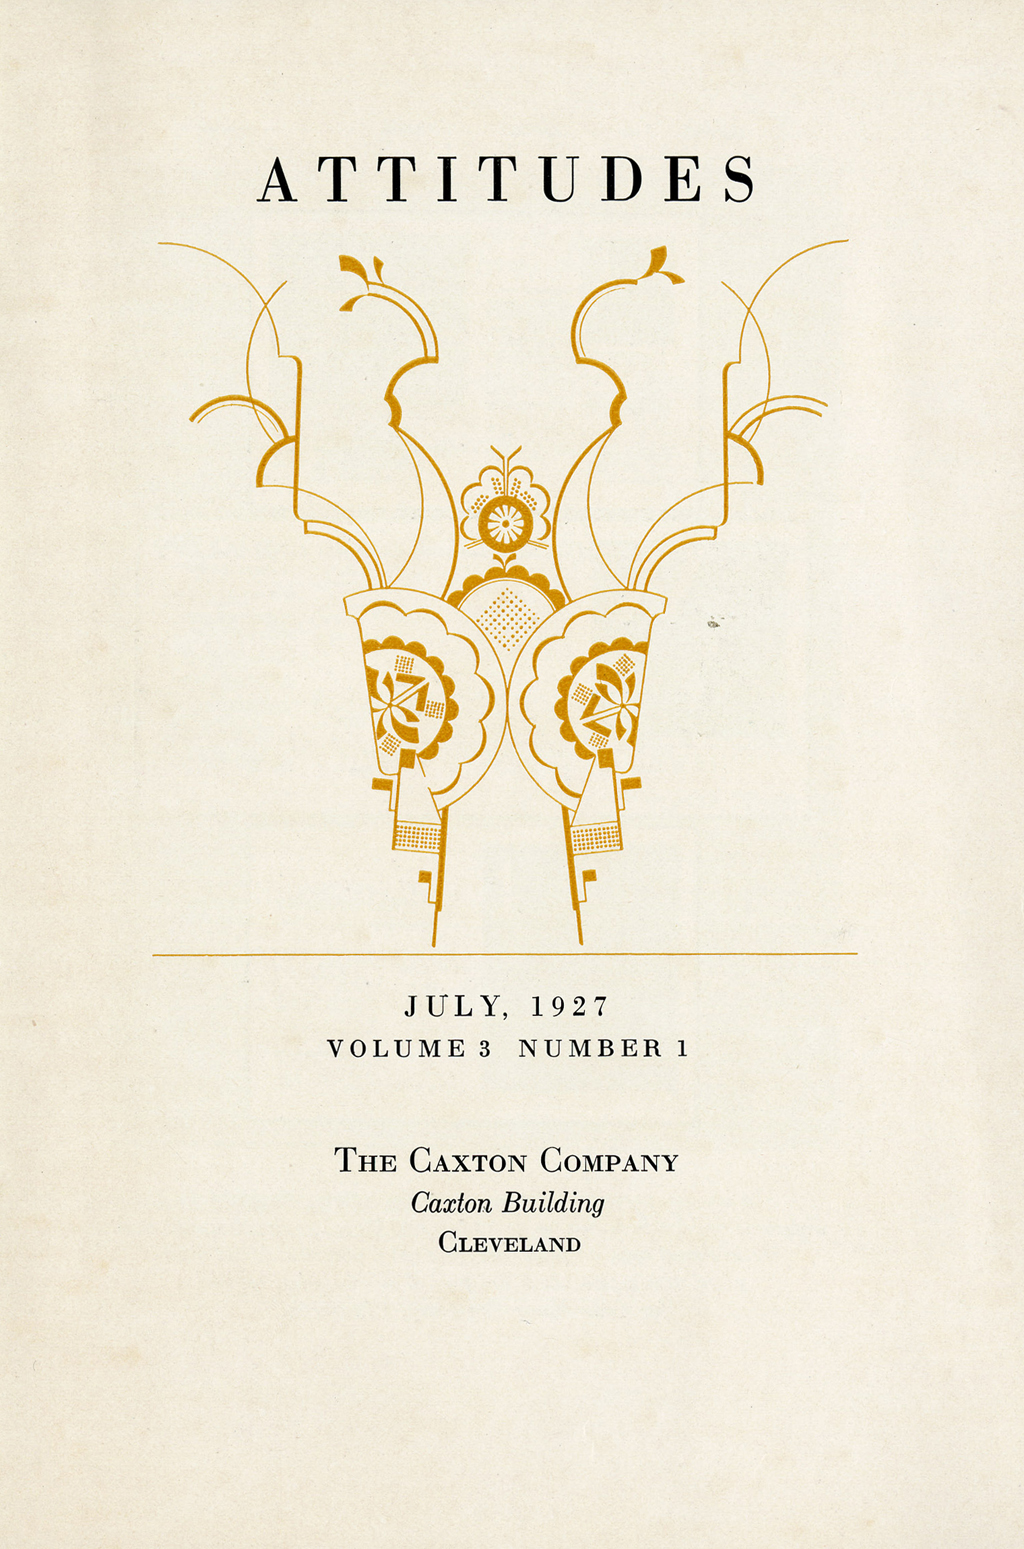 Title page of Attitudes, vol. 3, no. 1 (1927) by The Caxton Company. Decorative design by W.A. Dwiggins. Courtesy of the Western Reserve Historical Society.